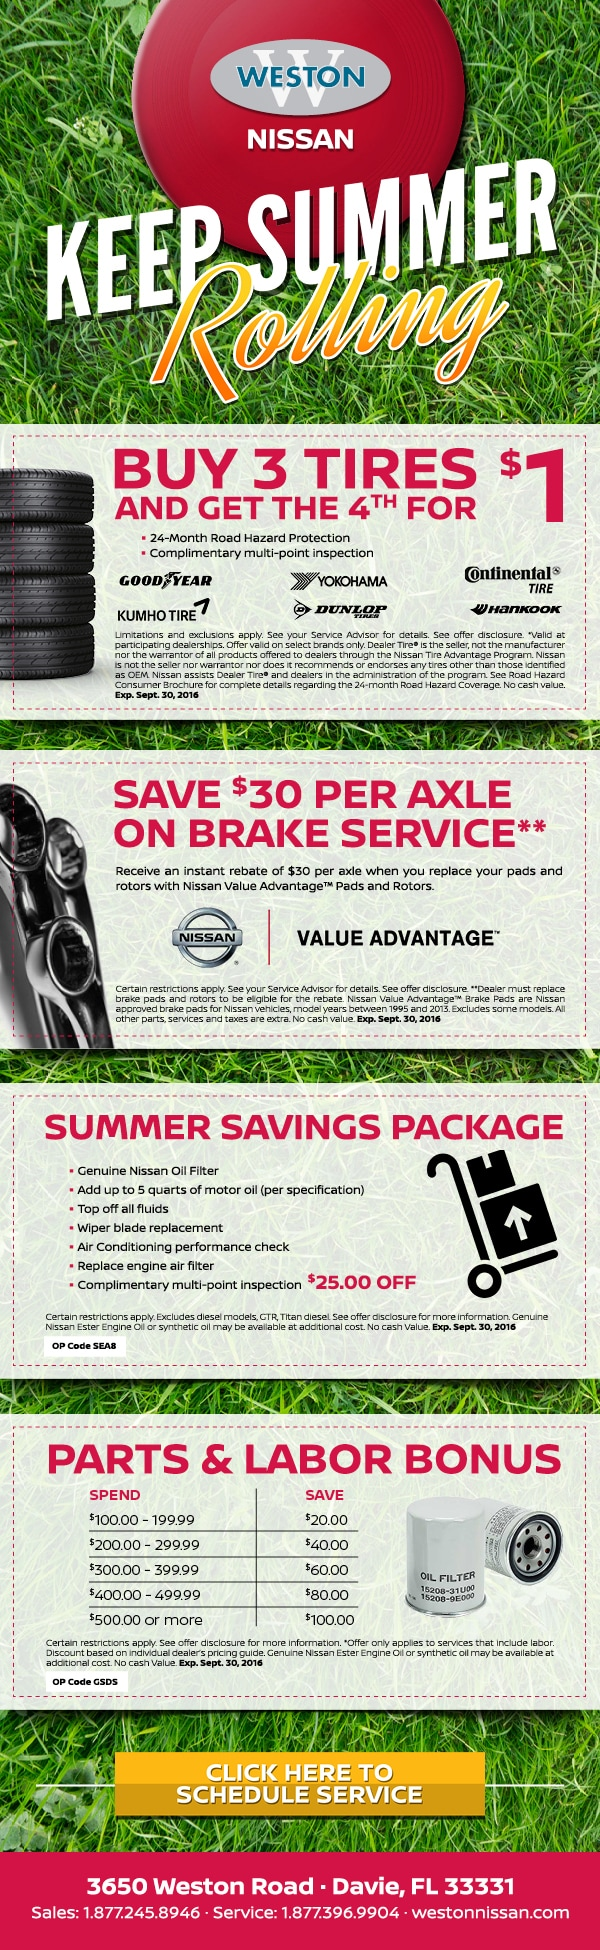 Nissan oil change coupon miami - Earthbound trading company coupons 2018